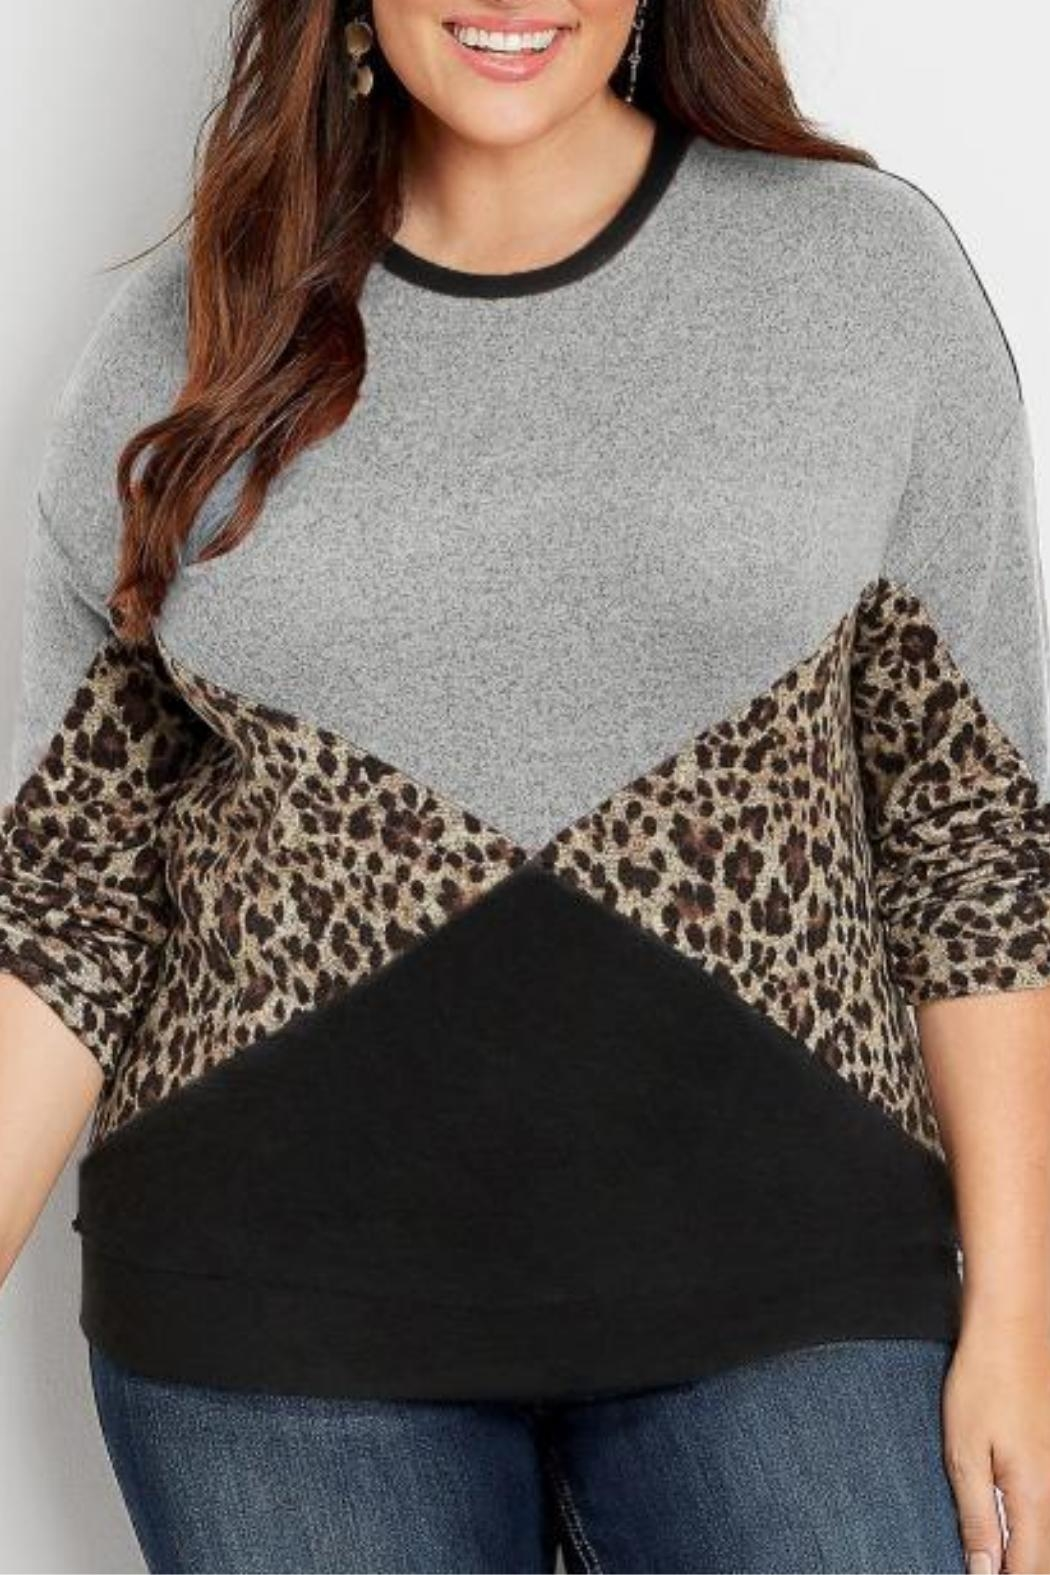 Unbranded Leopard Print Sweater - Main Image